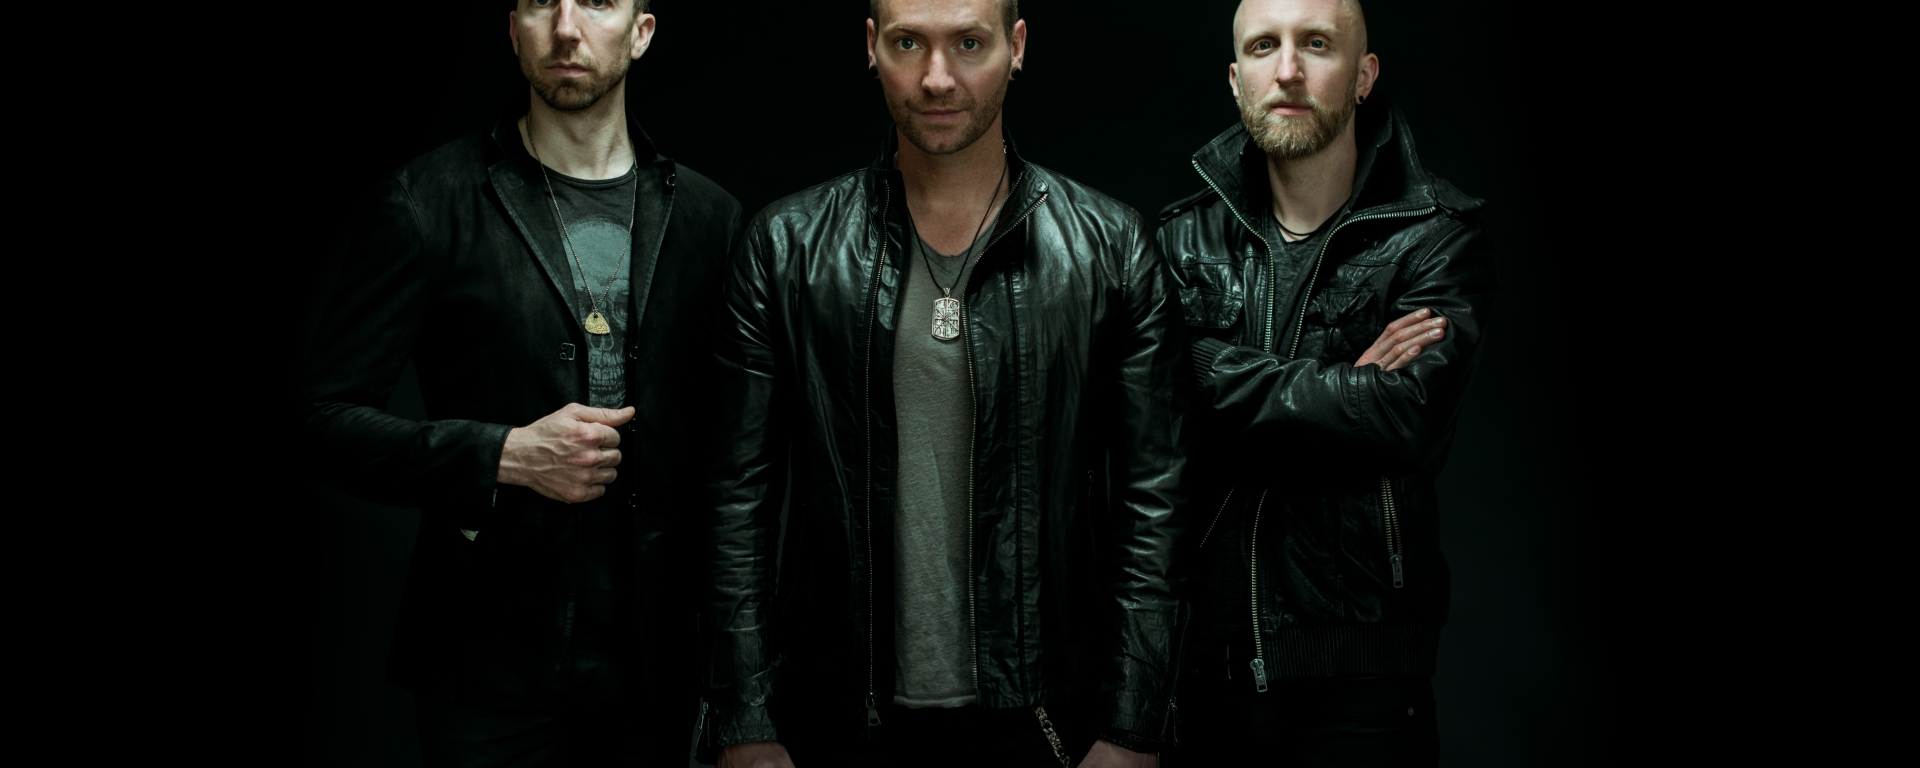 Inhale- Exhale Interview with Trevor McNevan of Thousand Foot Krutch